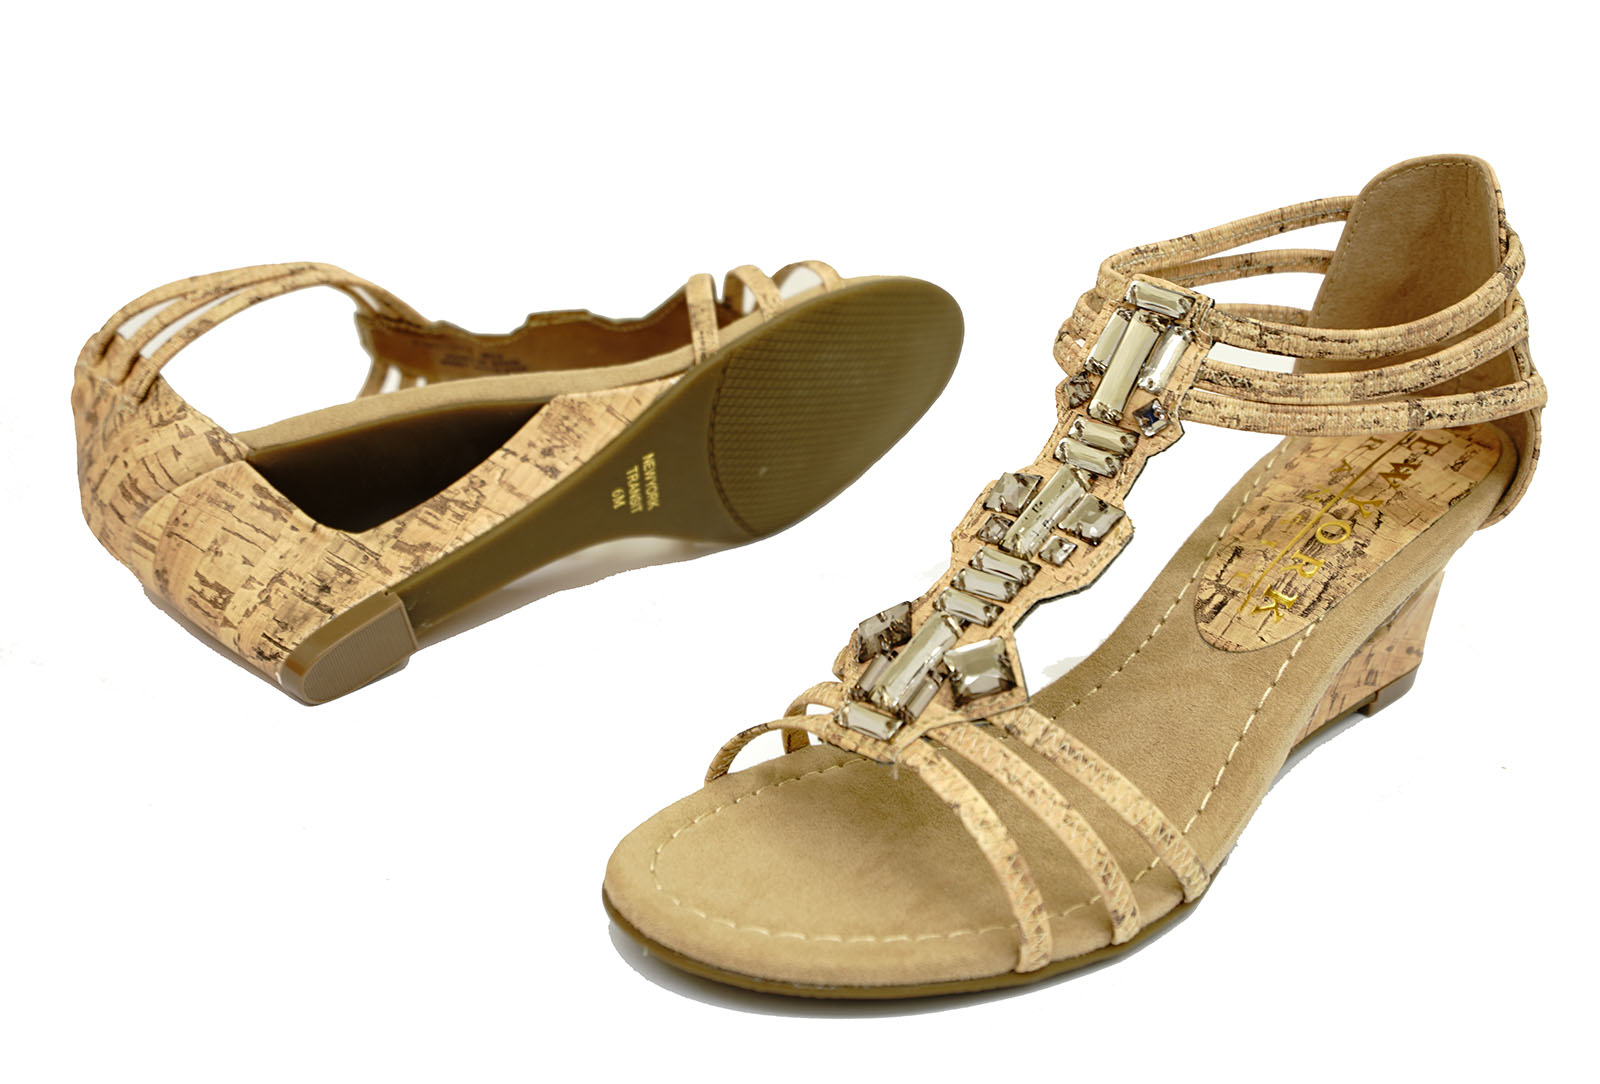 67b374557b792 Sentinel LADIES CORK WEDGES GLADIATOR COMFY ELASTIC OPEN-TOE STRAPPY  SANDALS SHOES 4-9